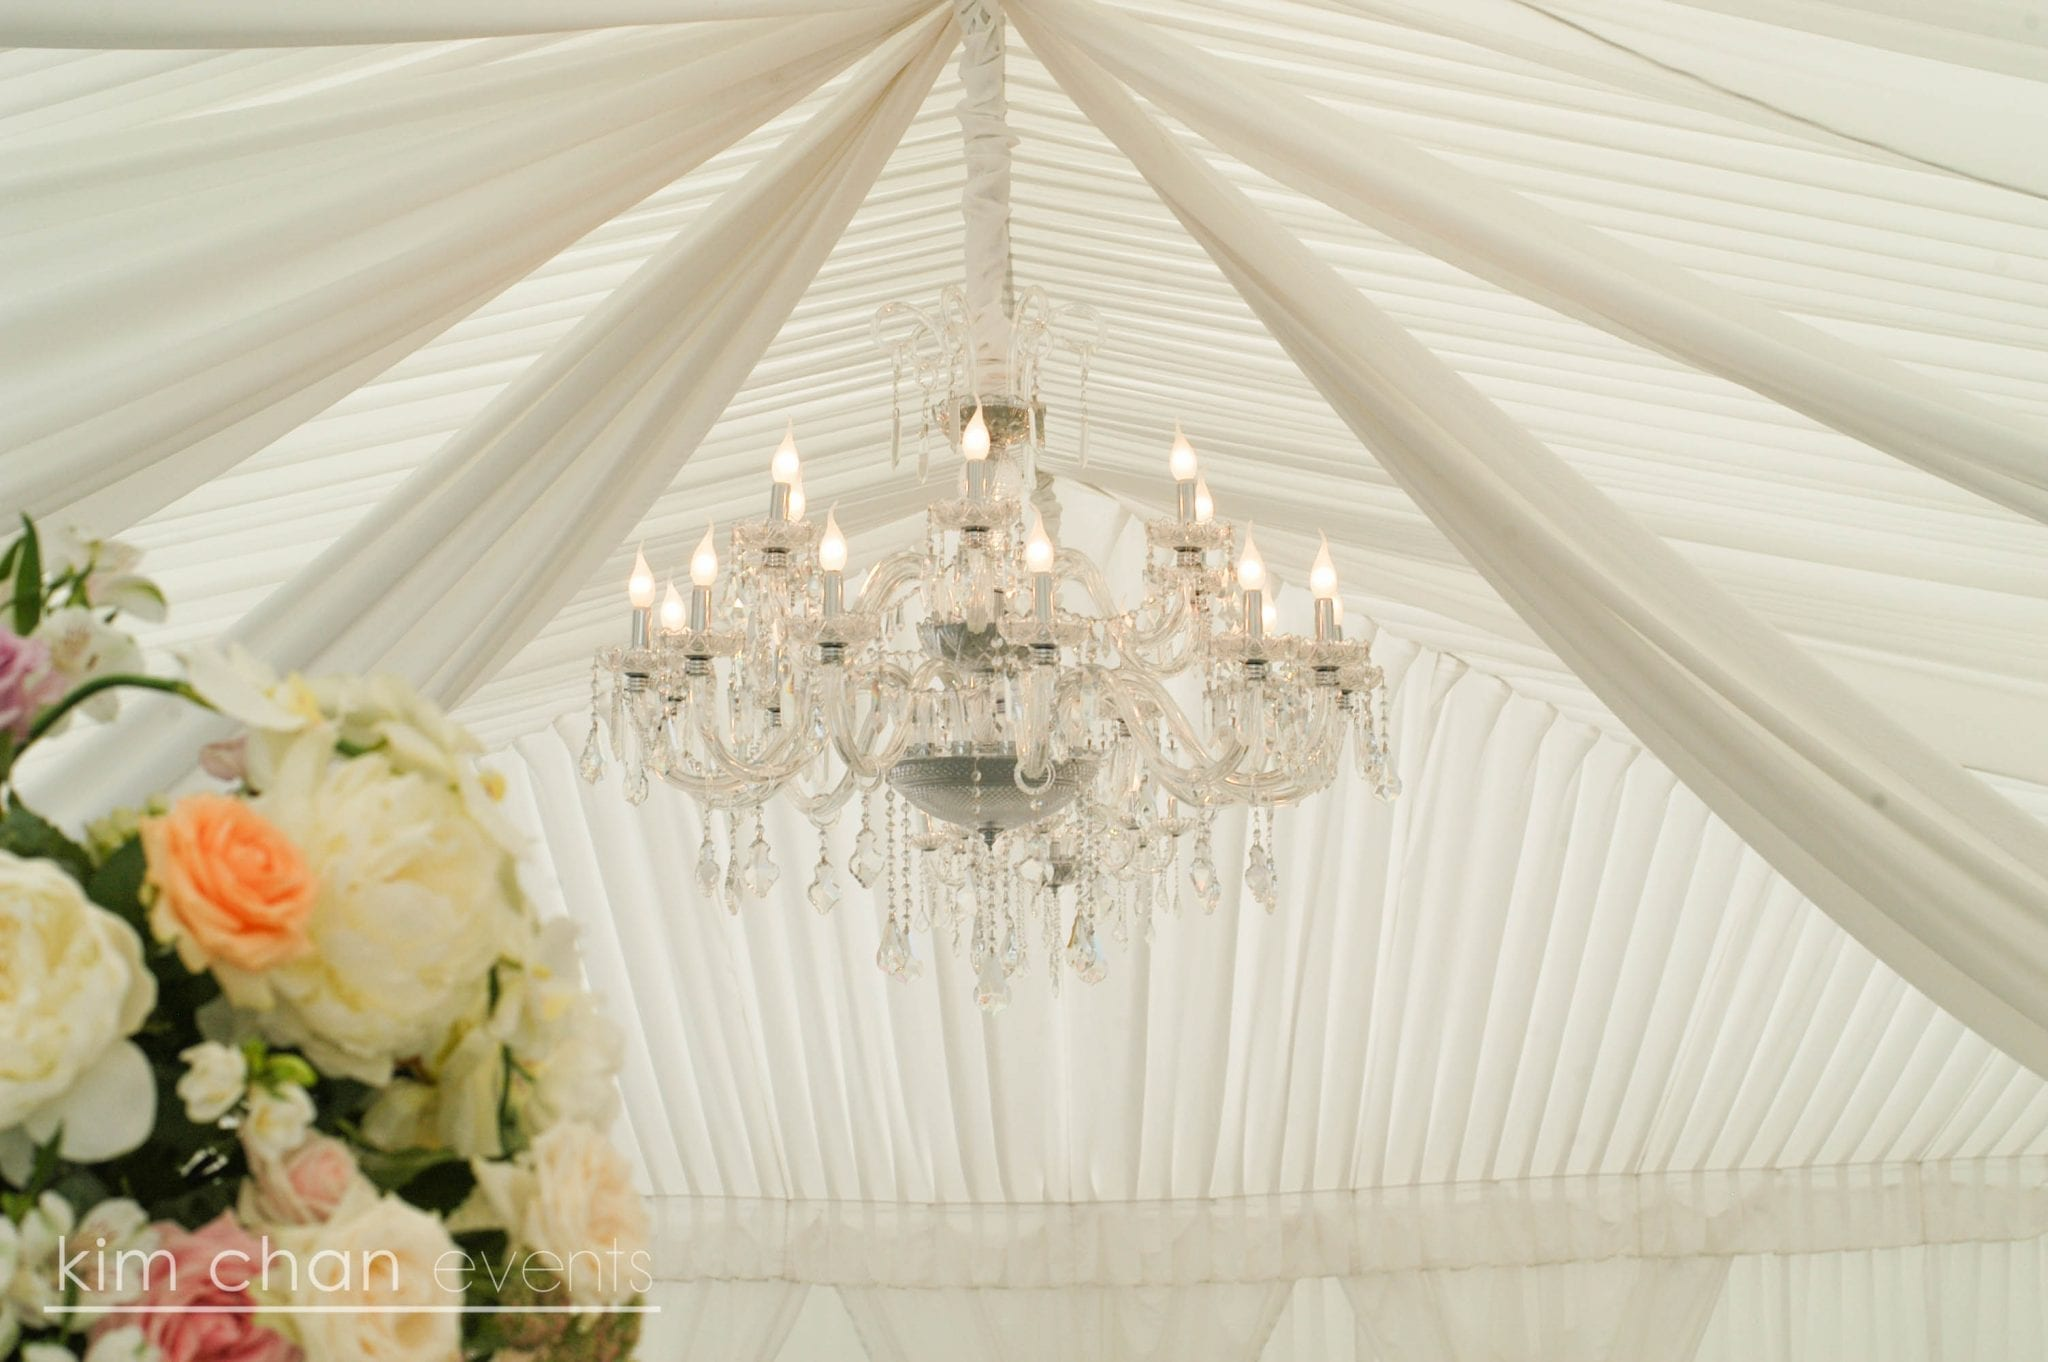 Kim Chan Events| Double Layer Chandelier, in marquee with peach pink and white flowers,